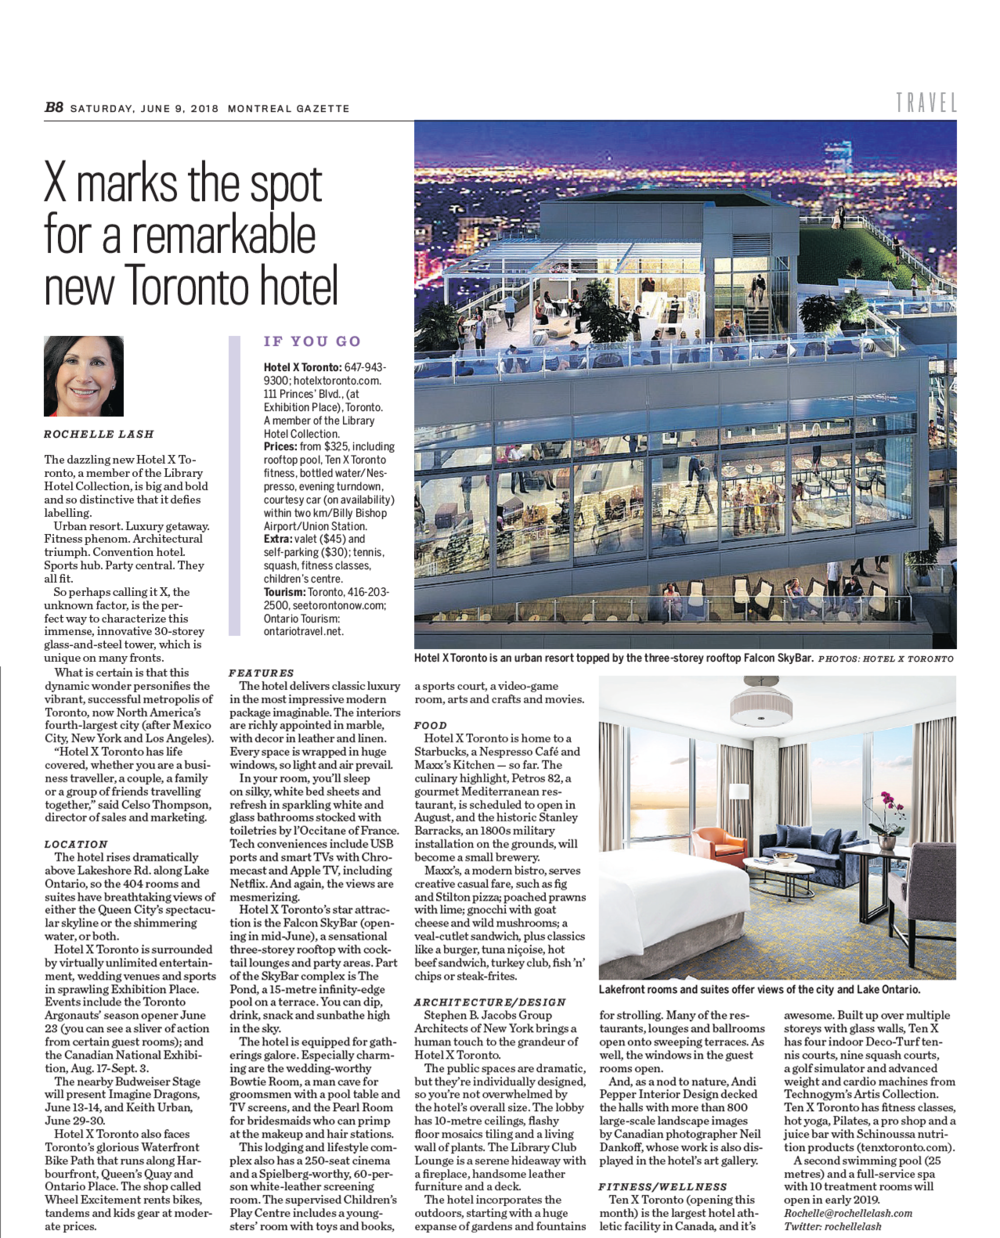 X marks the spot for a remarkable new Toronto hotel<br>MONTREAL GAZETTE